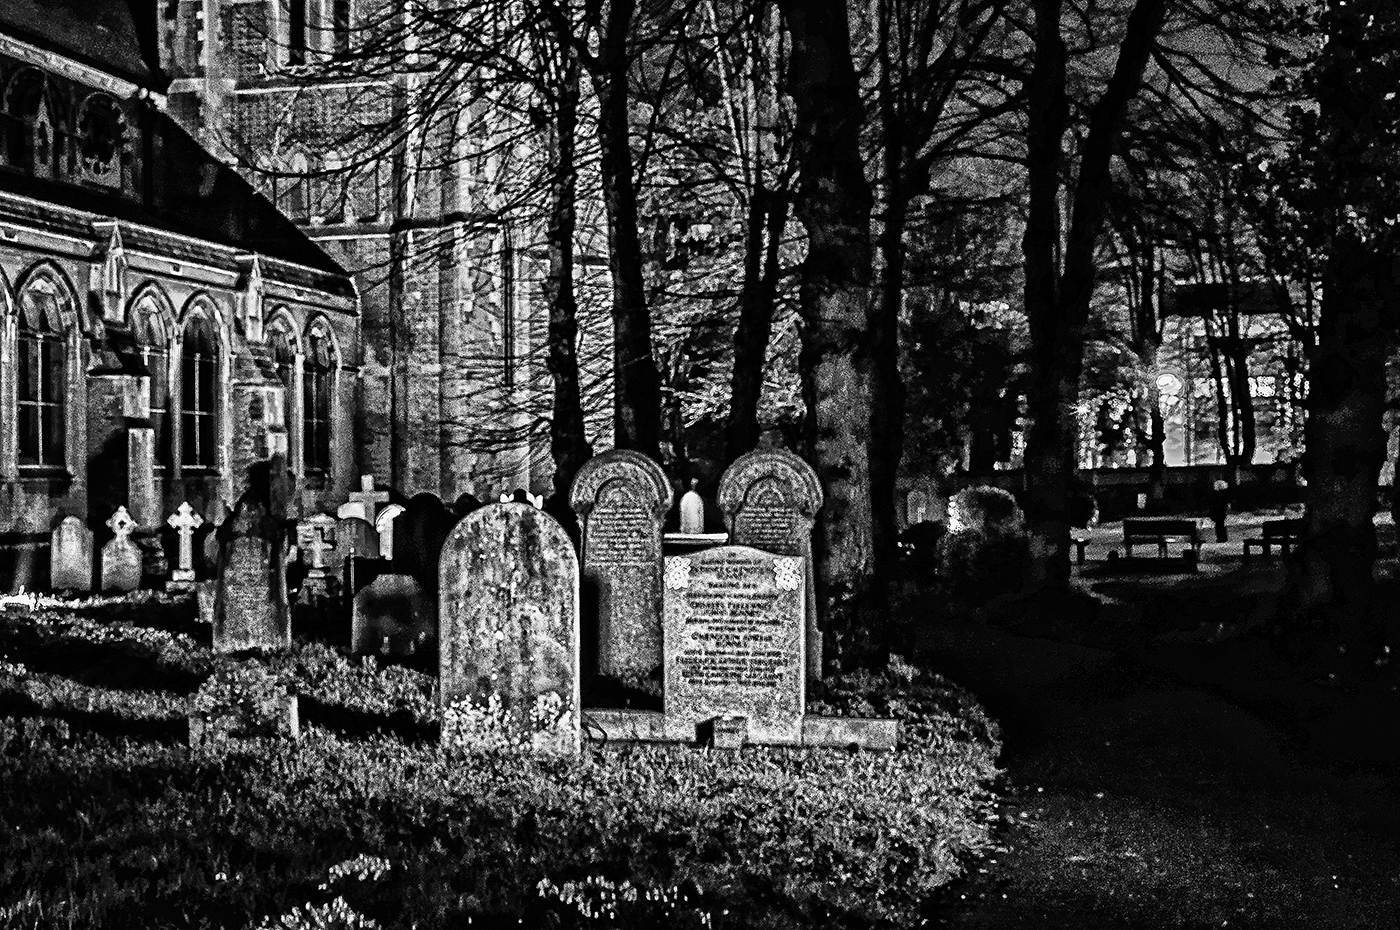 CHURCHYARD AT NIGHT by Gary Scorgie.jpg